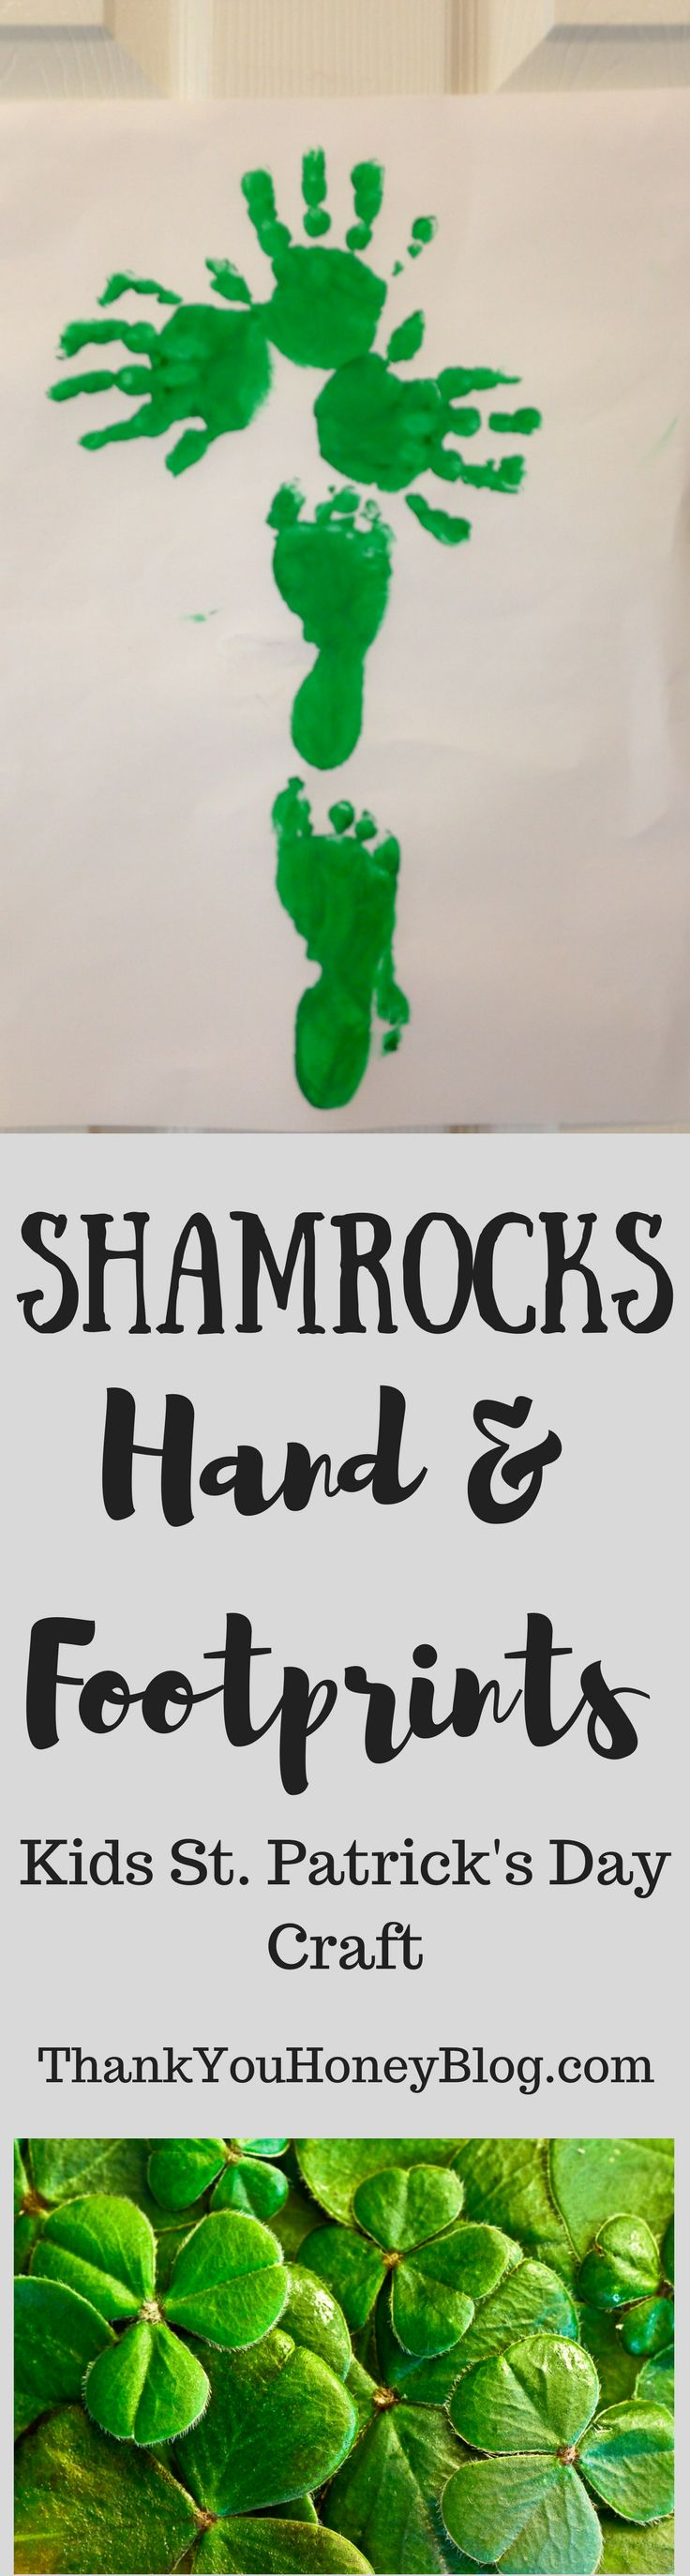 Shamrock Hand & Footprints fun St. Patrick's Day Kids Craft! Simple and easy the kids will love it! Footprint & Handprint Shamrocks, #Shamrocks, #StPatricksDay, St. Patrick's Day #crafts, #kidscraft, #kidsactivity, #DIY, Craft,